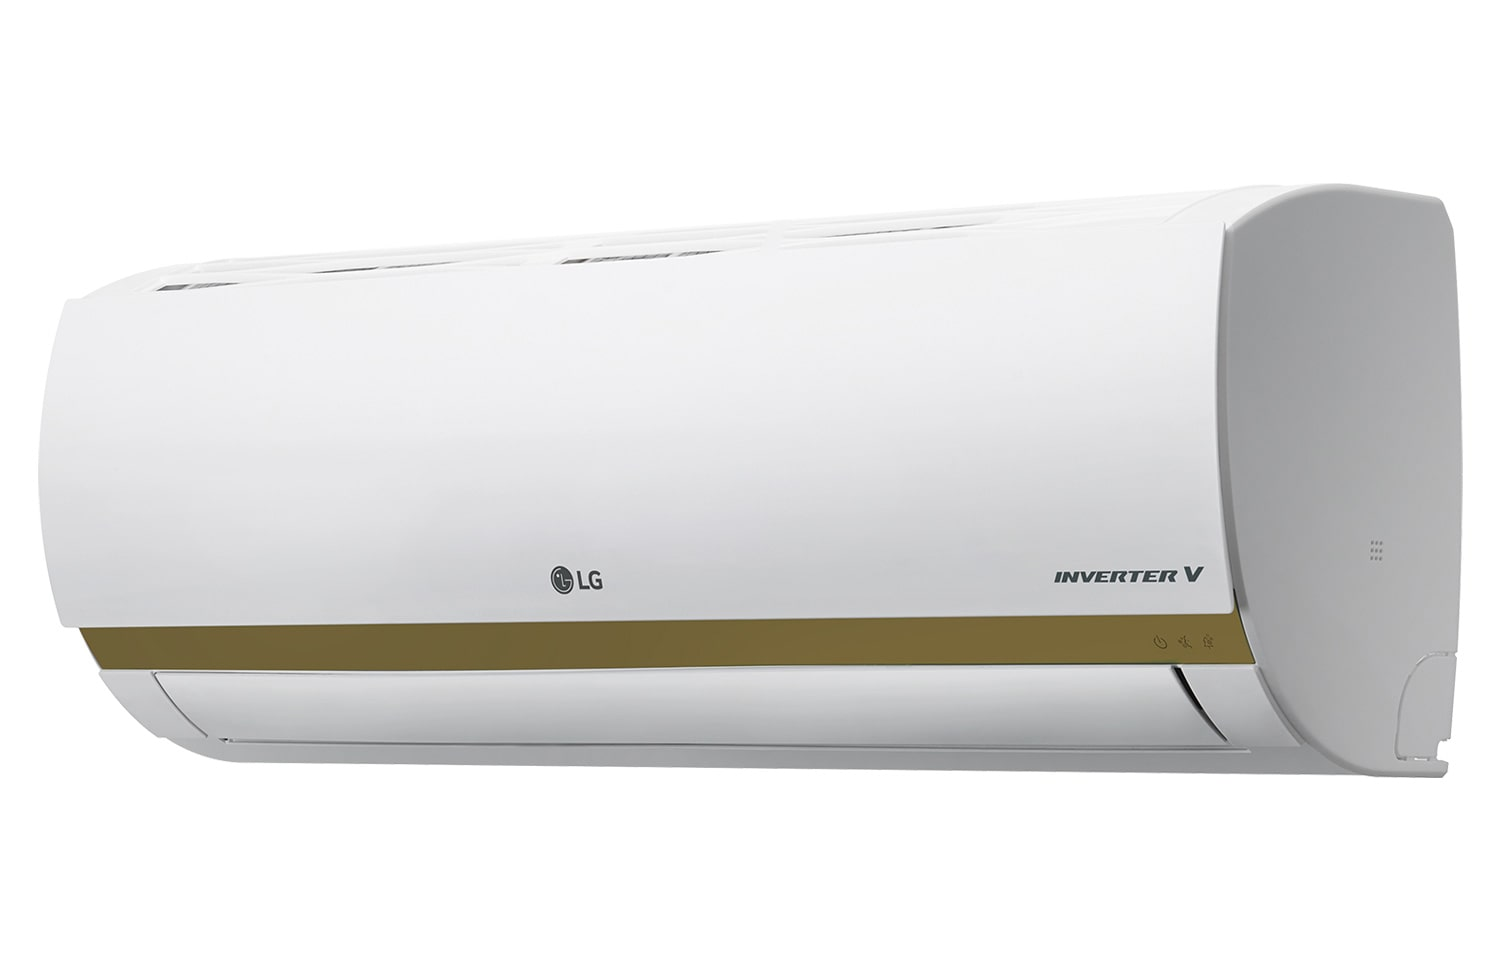 LG Home Air Conditioners BS-Q126HXA1 thumbnail 3